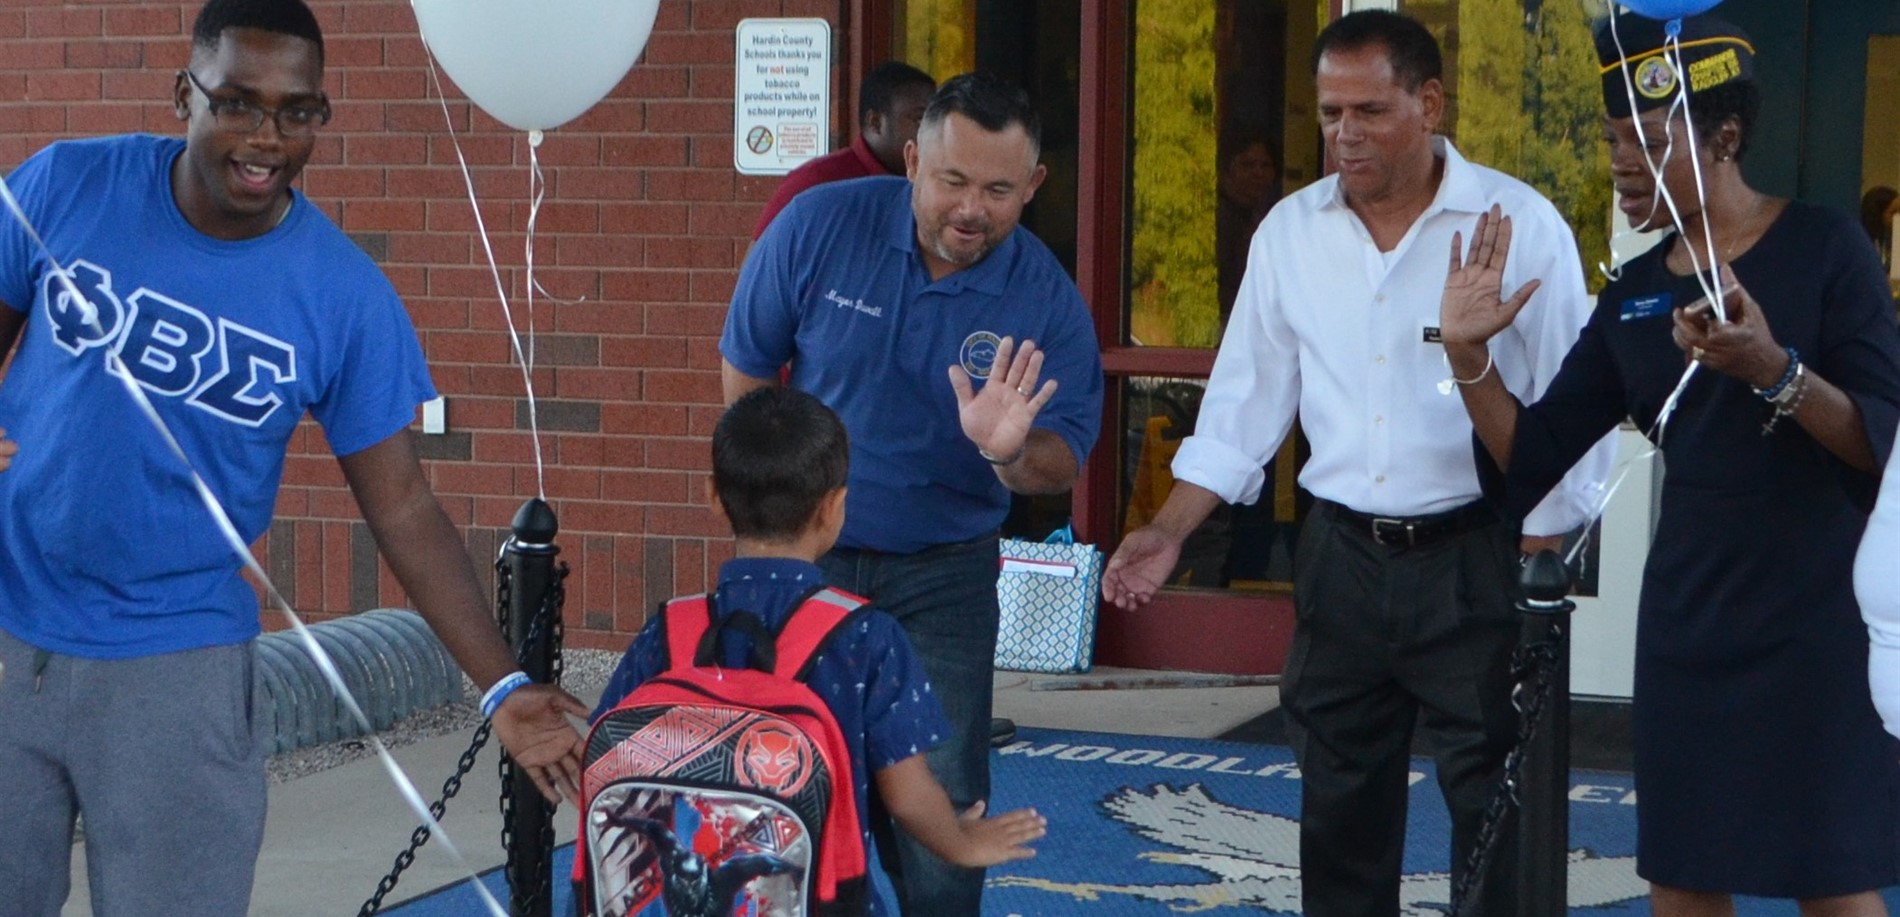 Radcliff Mayor JJ Duvall and Councilman Kim Thompson greet students at Woodland Elementary.